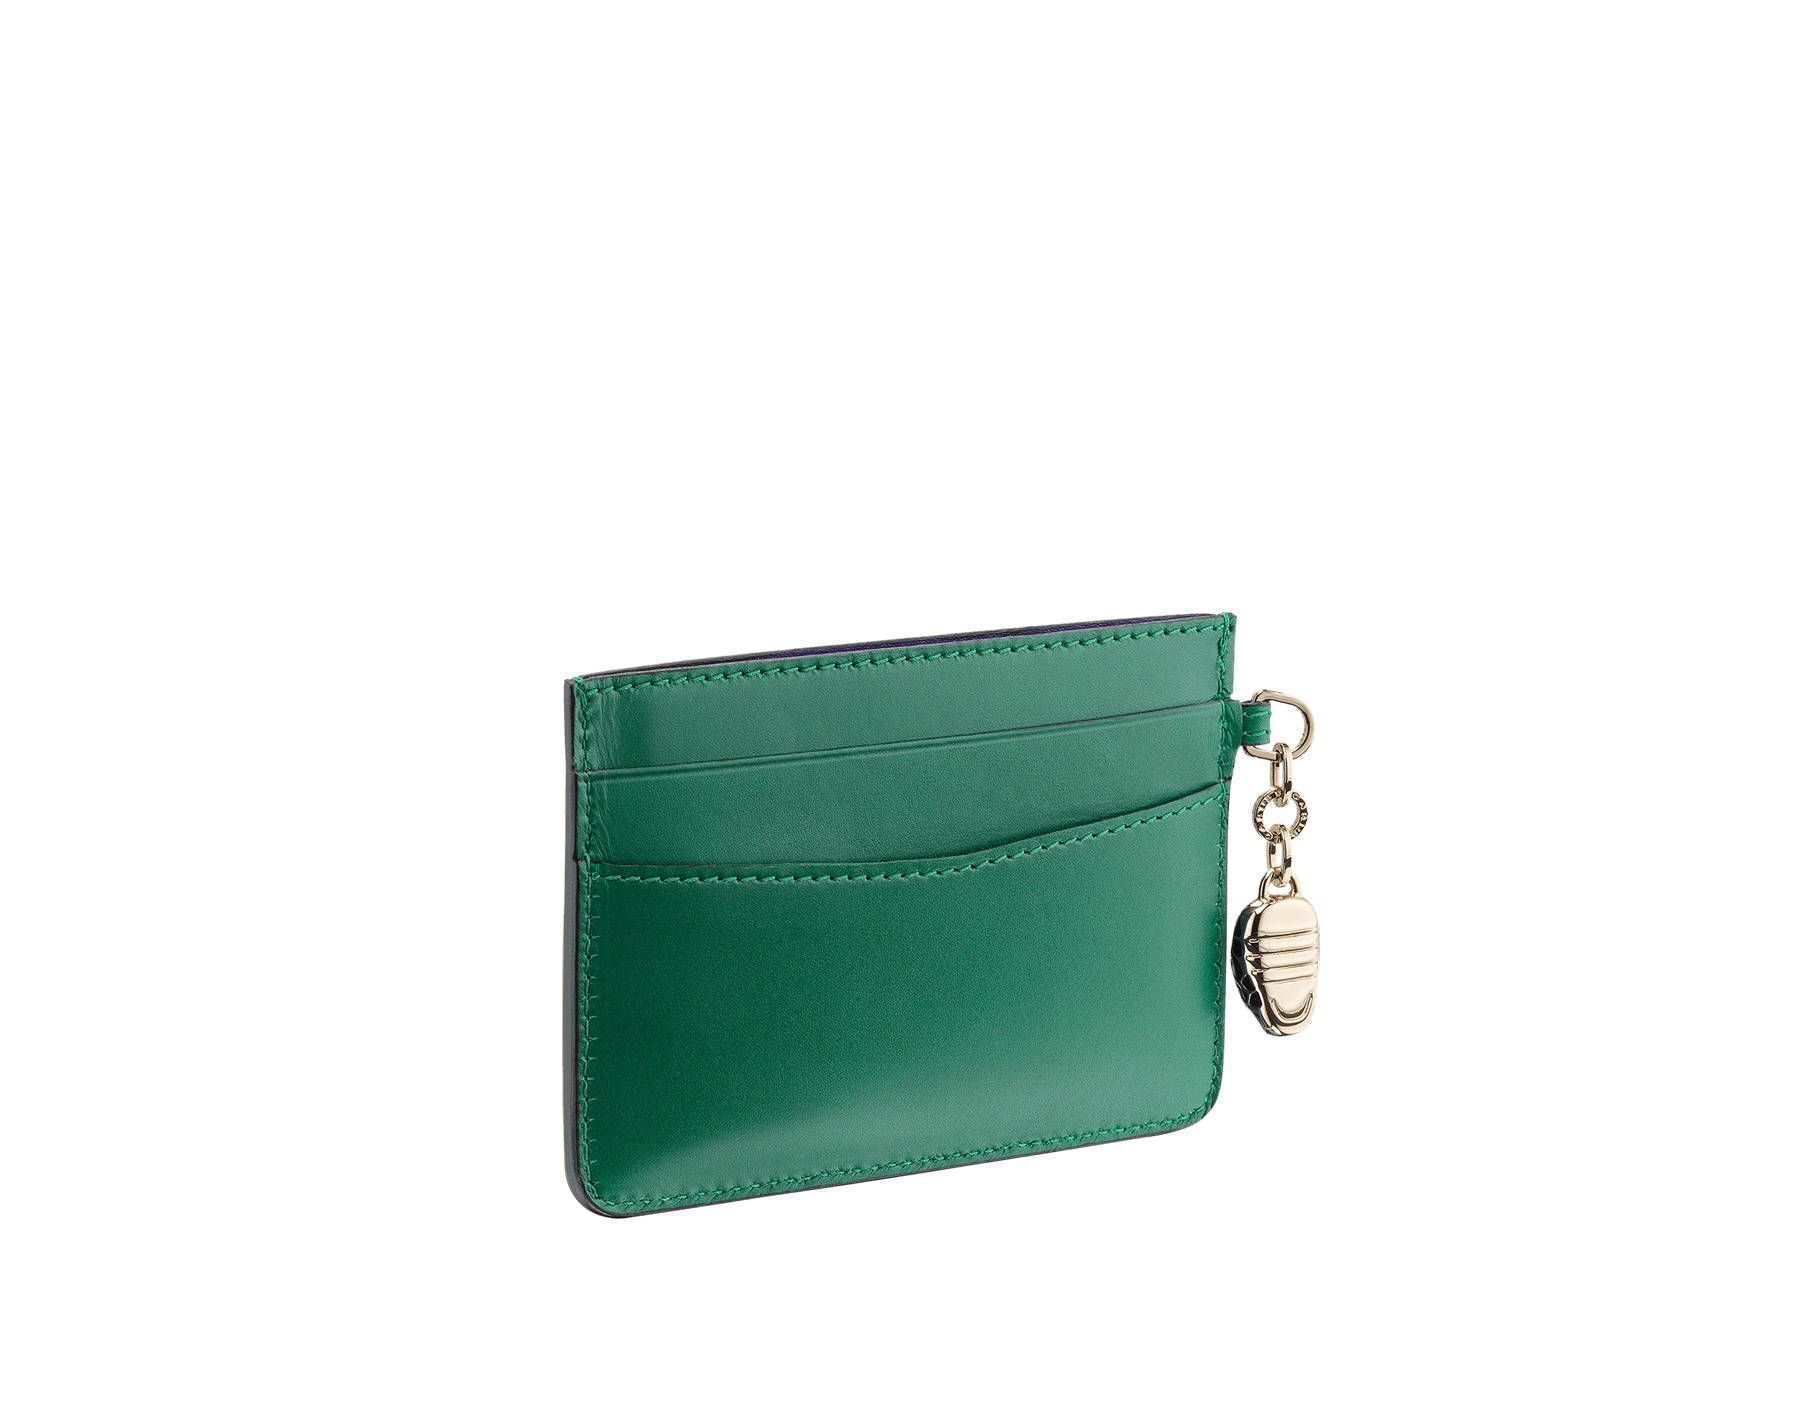 Credit card holder in emerald green and violet amethyst calf leather. Serpenti charm in black and white enamel with green malachite enamel eyes and Bulgari logo in metal characters. Four credit card slots and one compartment. Also available in other colours. 10,5 x 7,5 cm. - 4.1. x 3.0'' 282019 image 2